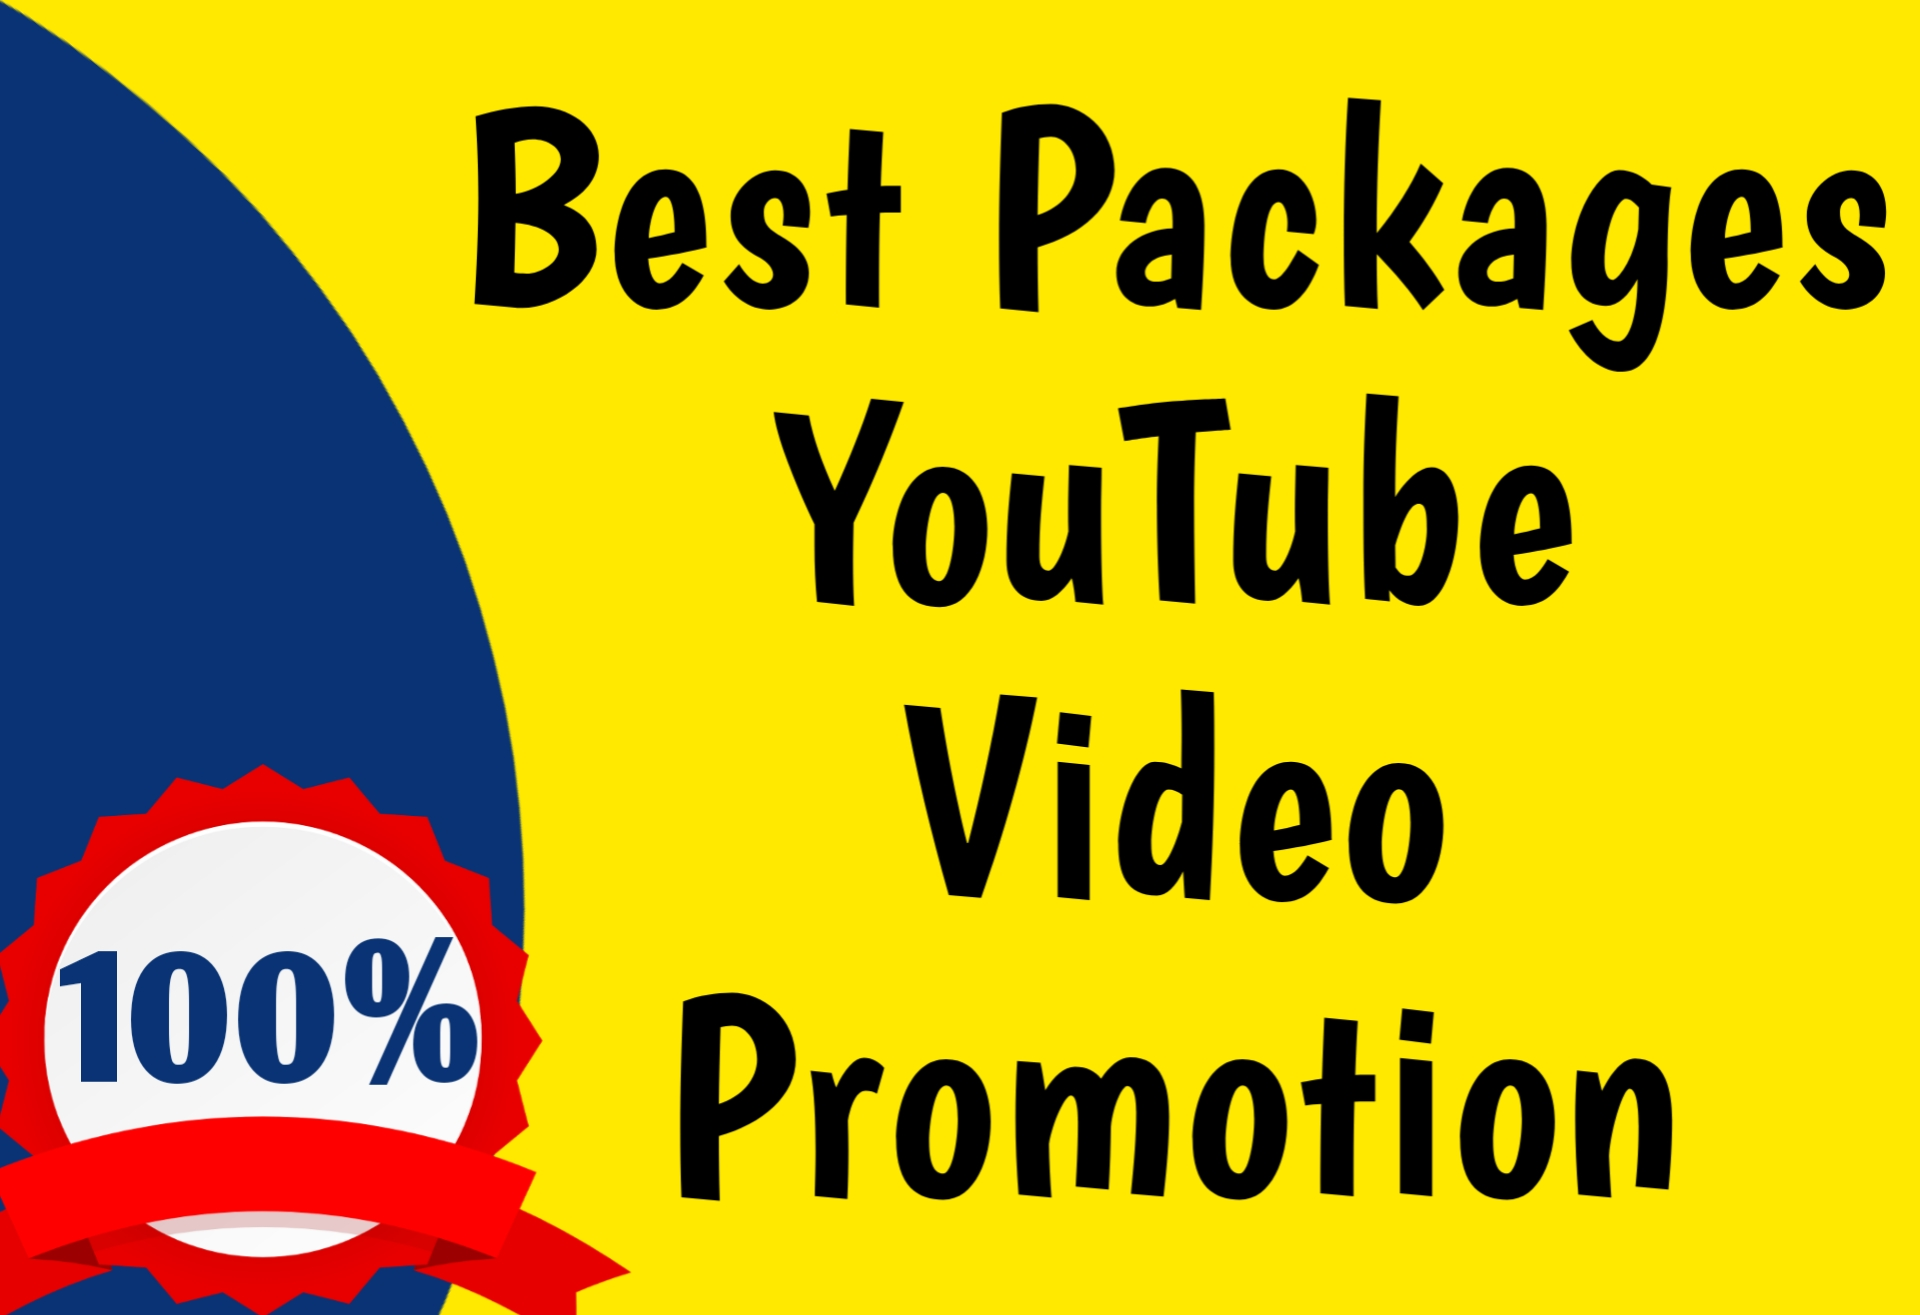 Best Package Youtube Video Promotion